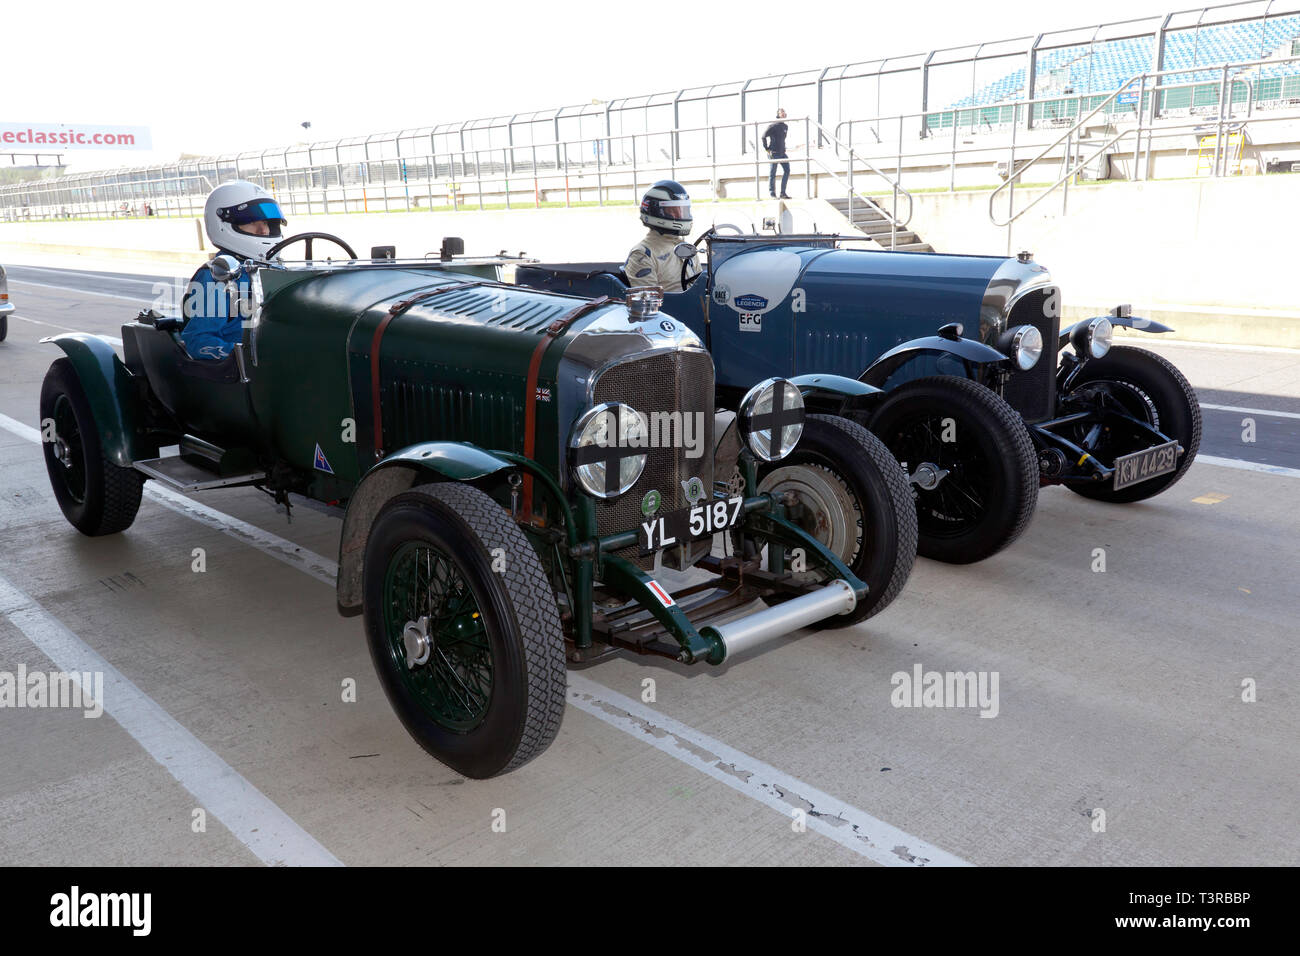 Two Pre-war Bentley Race Cars line up on the International pit lane,  to take part in a parade lap as part of the Centenary Celebrations, at the Silverstone Classic Media Day 2019 - Stock Image